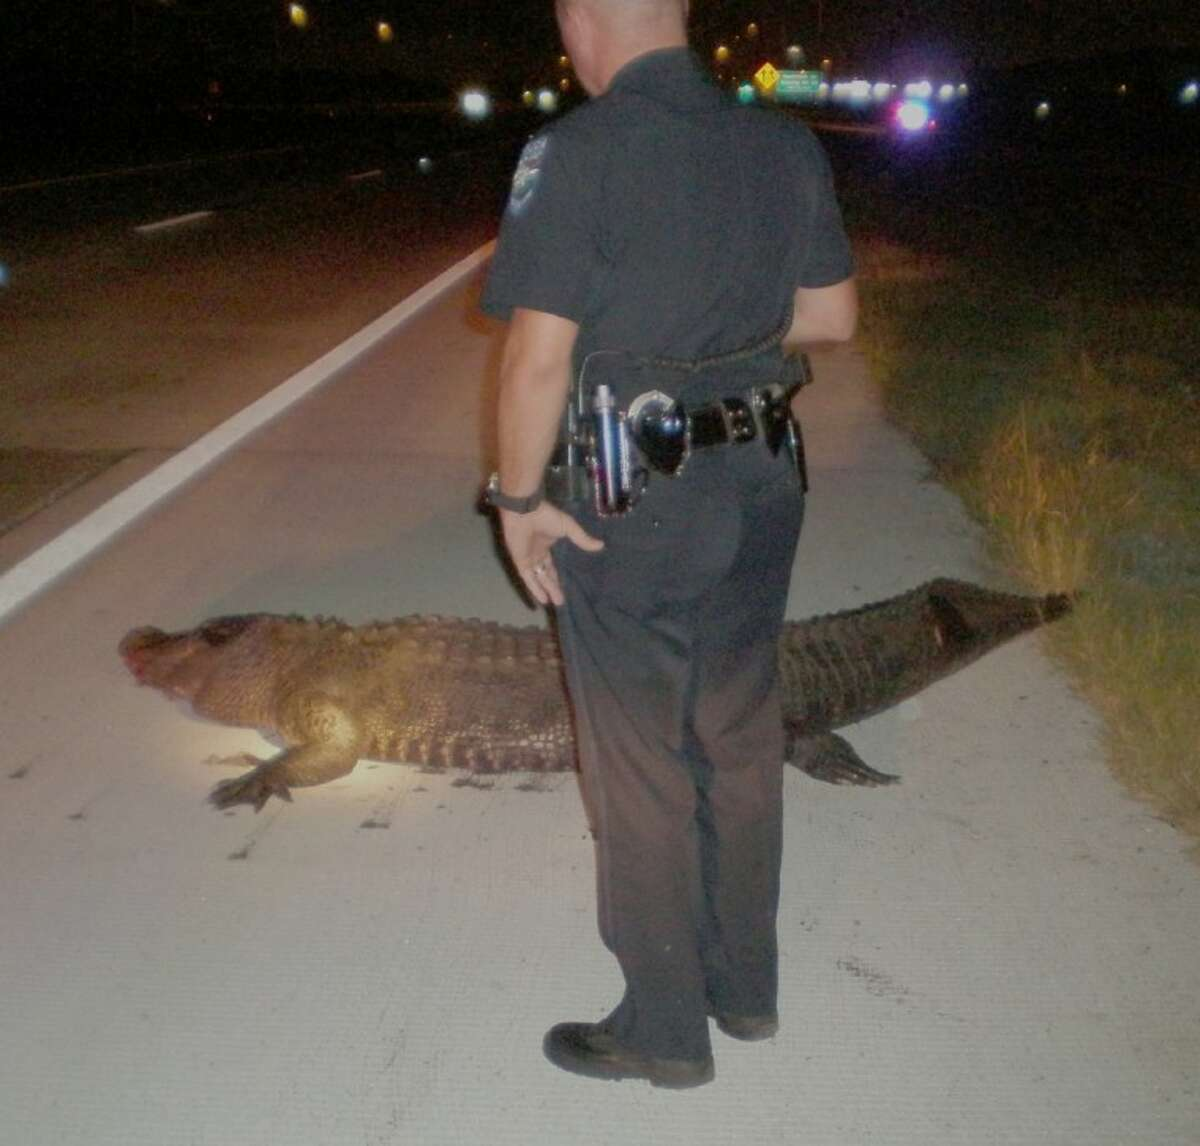 Pearland Police were called to investigate reports of a ten-foot-long dead alligator on SH 288.